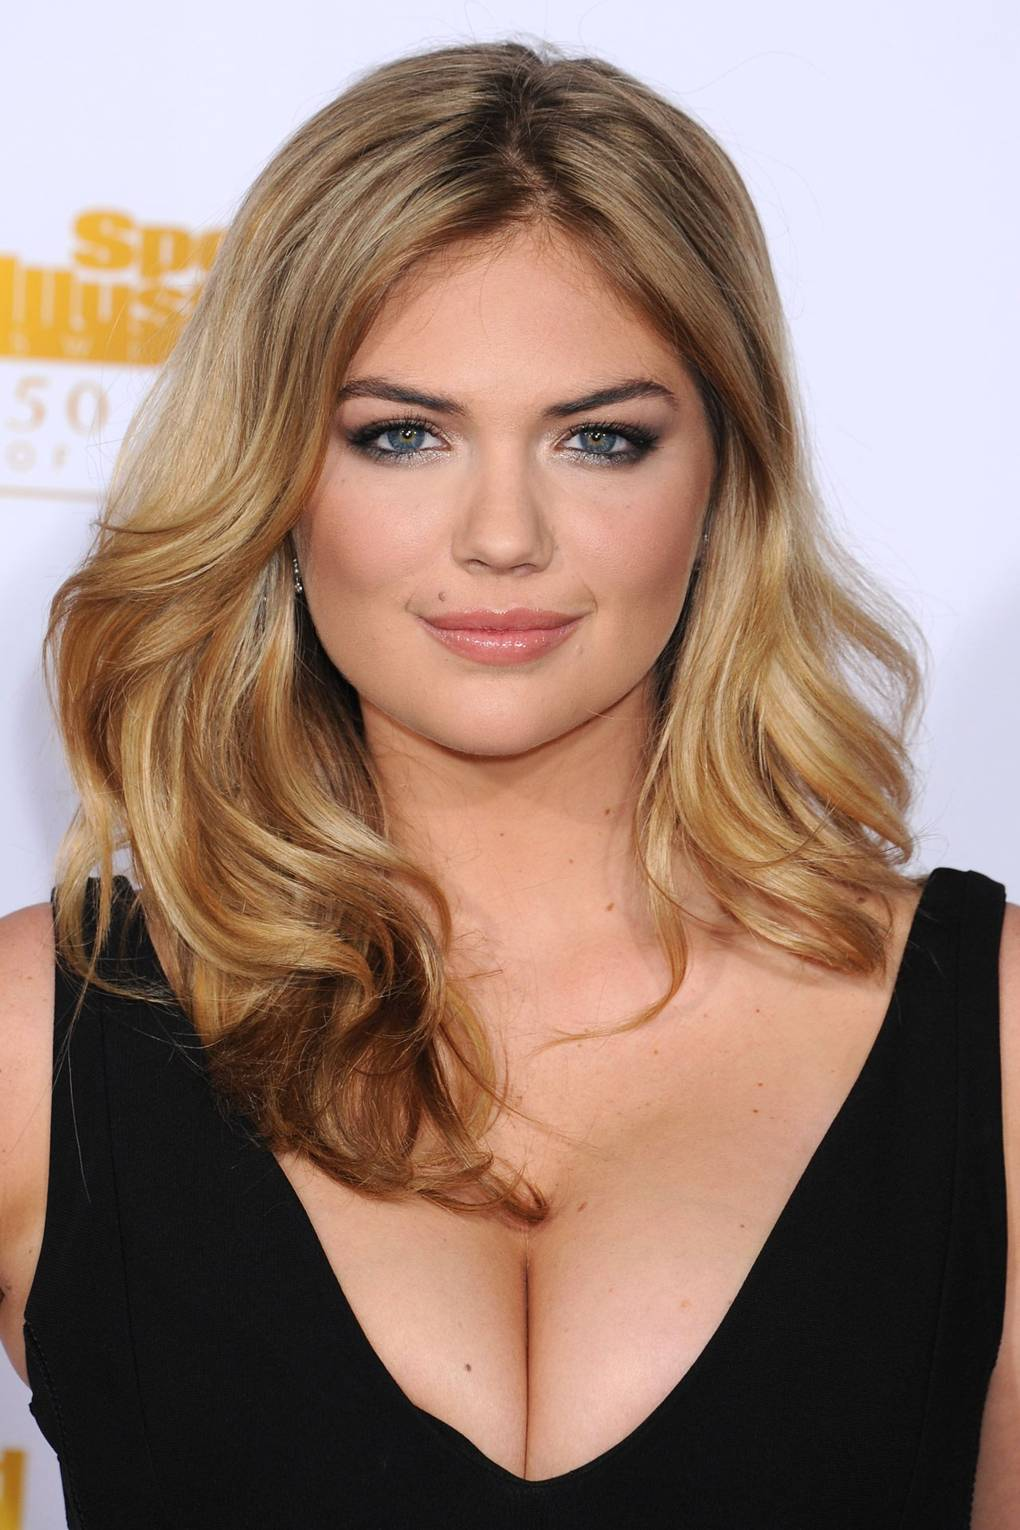 Kate Upton Wallpapers Sports Illustrated 2015 - Wallpaper Cave